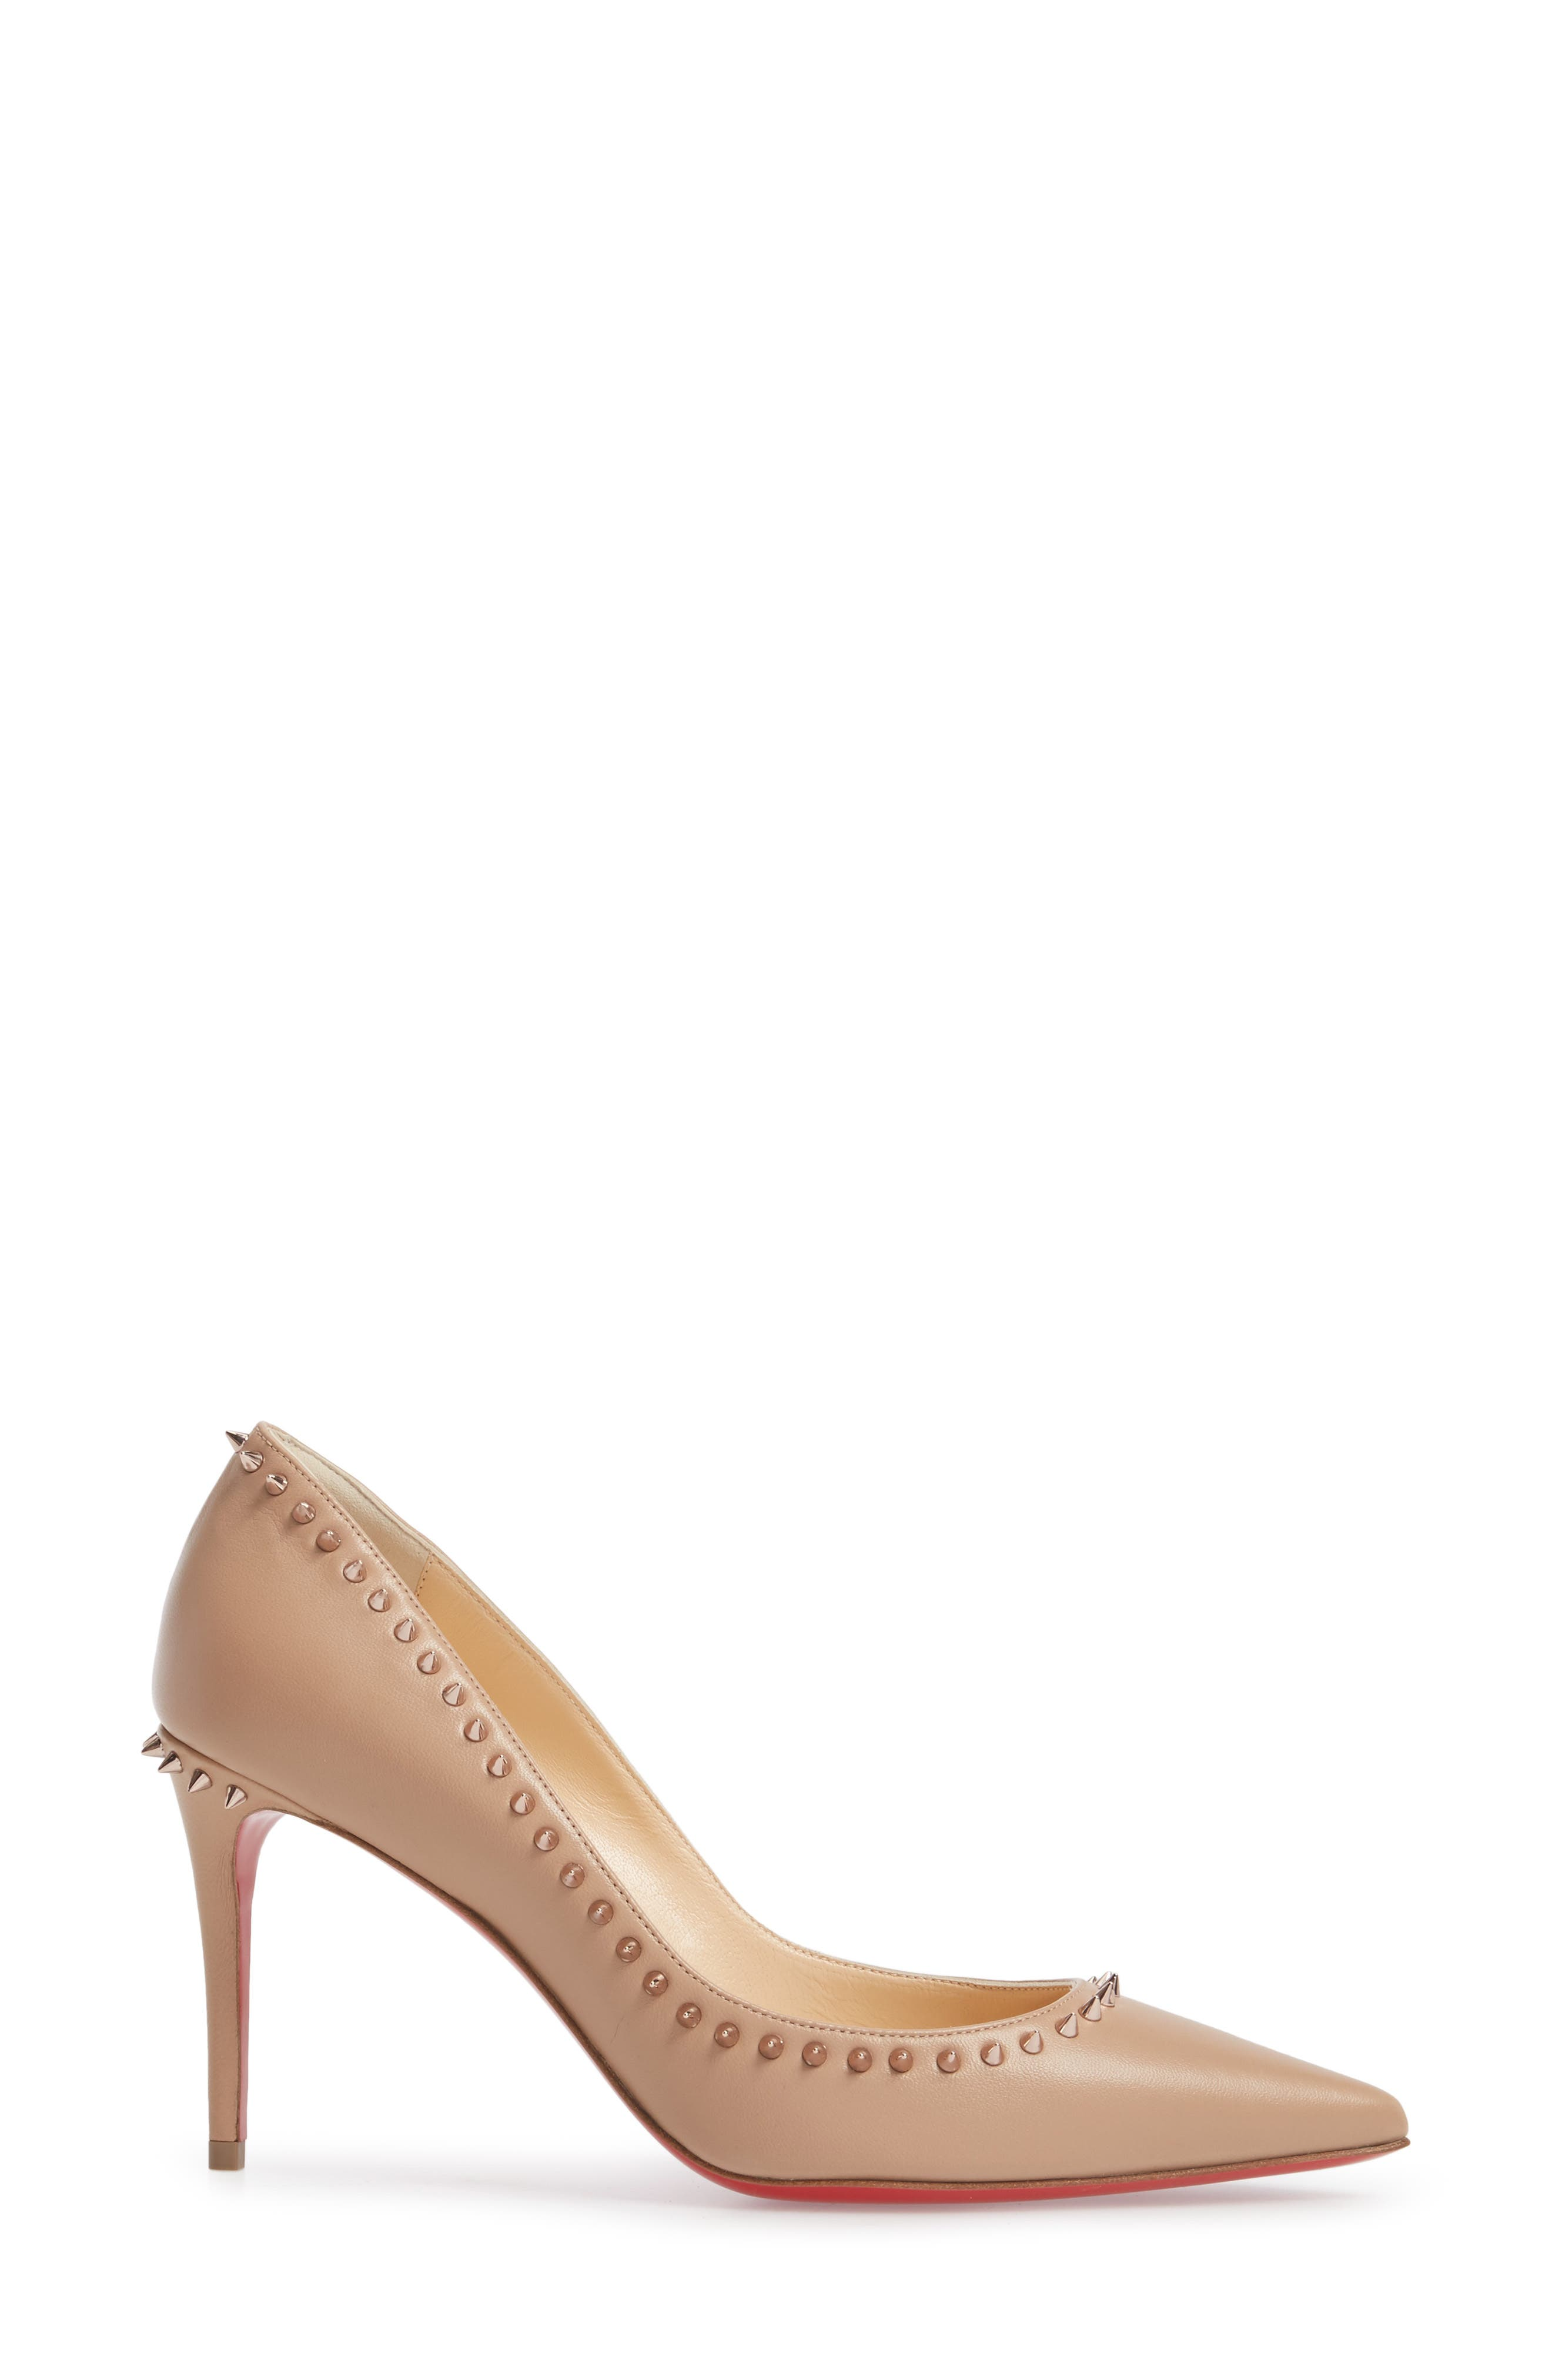 Anjalina Spiked Pointy Toe Pump,                             Alternate thumbnail 6, color,